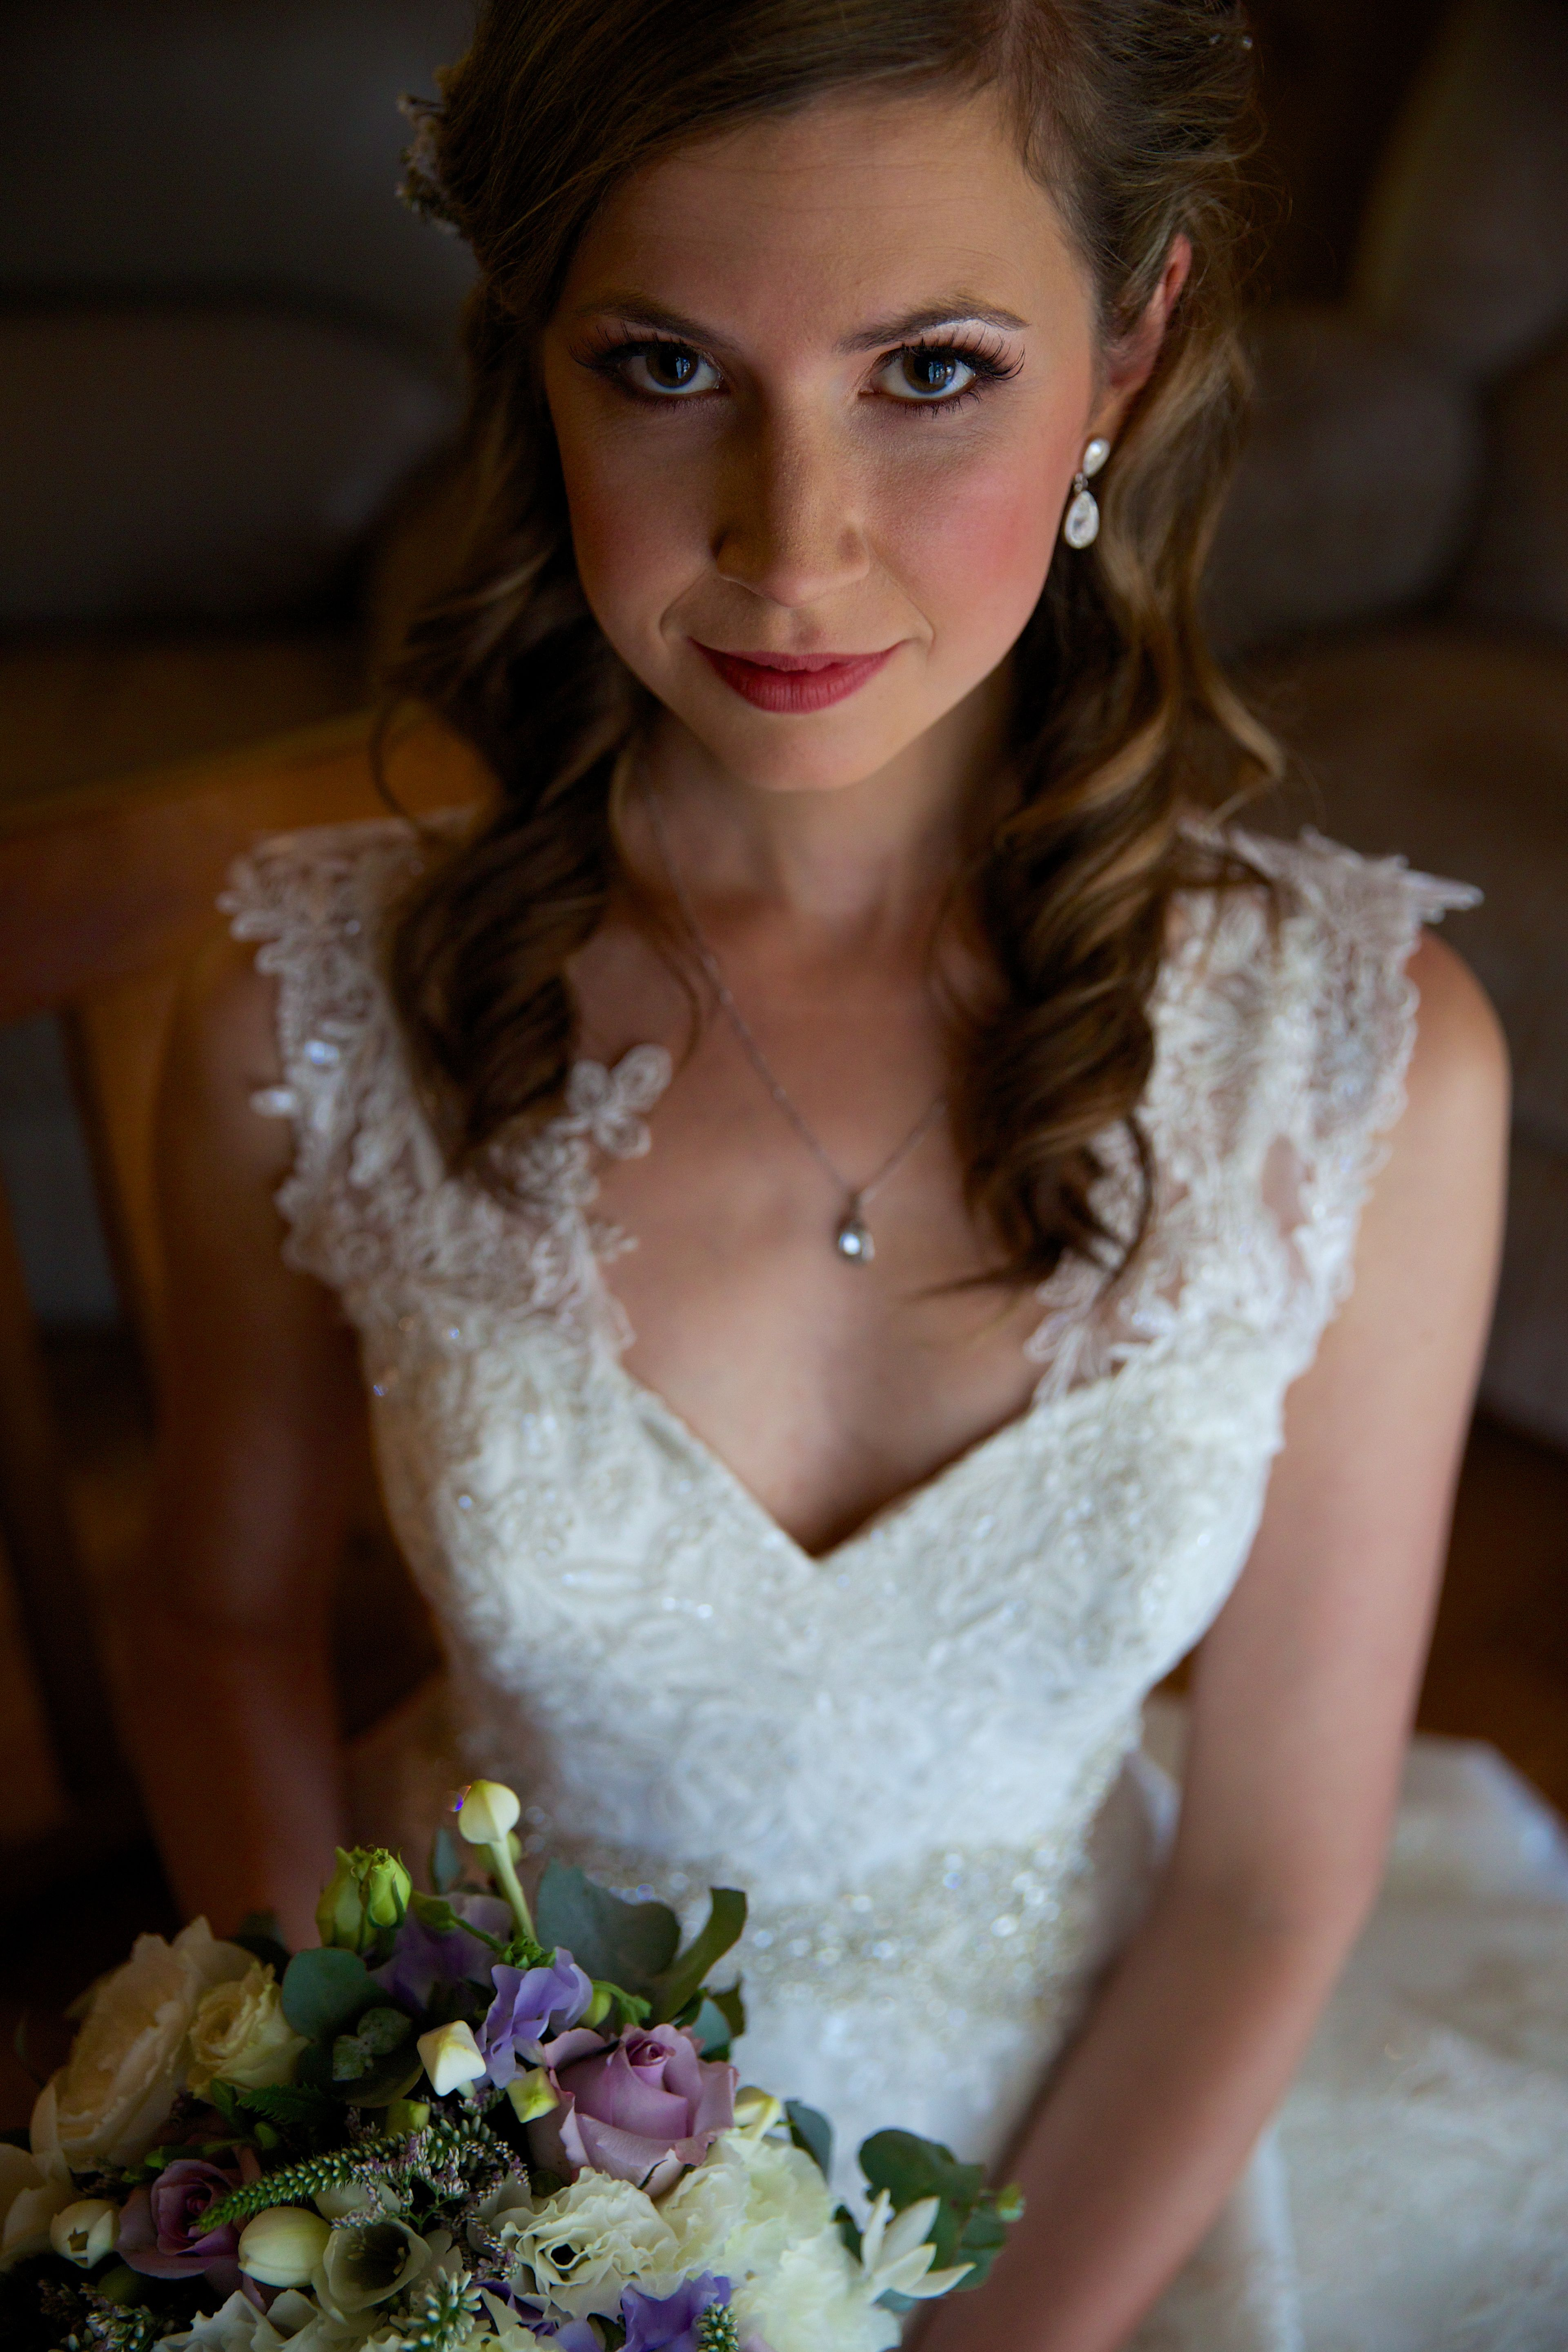 pin by the wedding stylist on wedding & bridal makeup | pinterest